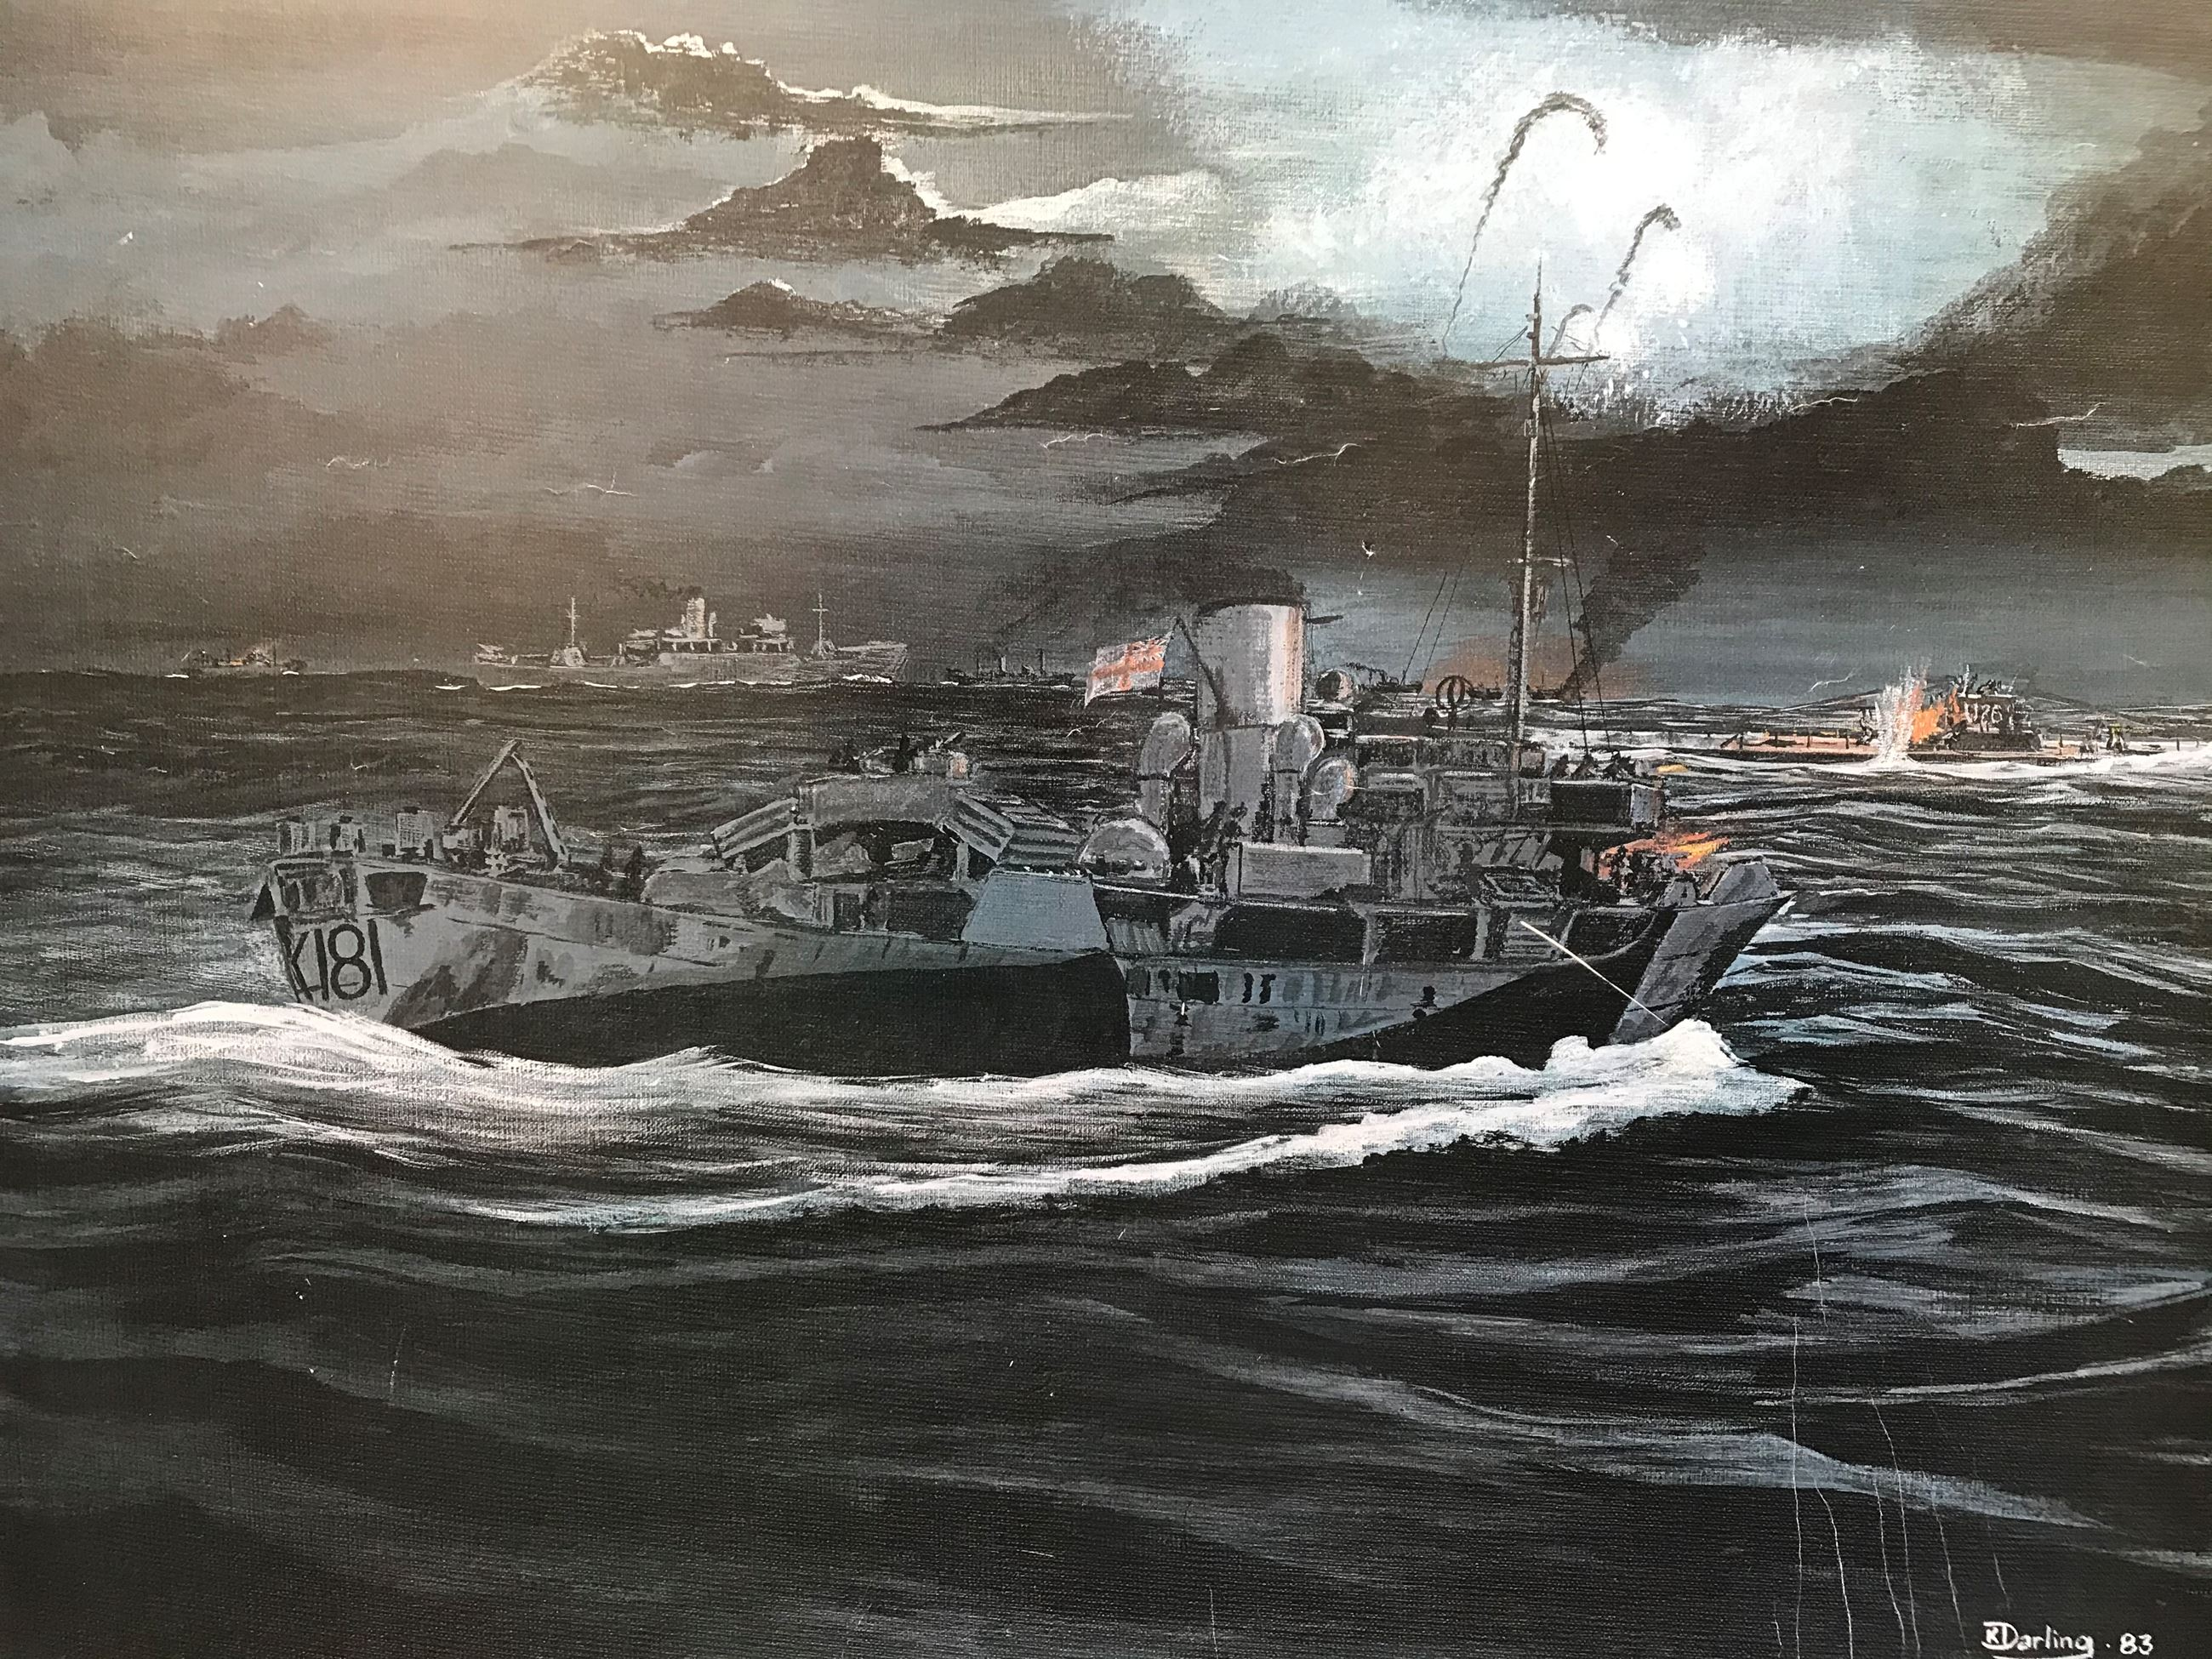 Artist K. Darling retired from the Navy worked for the Corp Commissionaires.